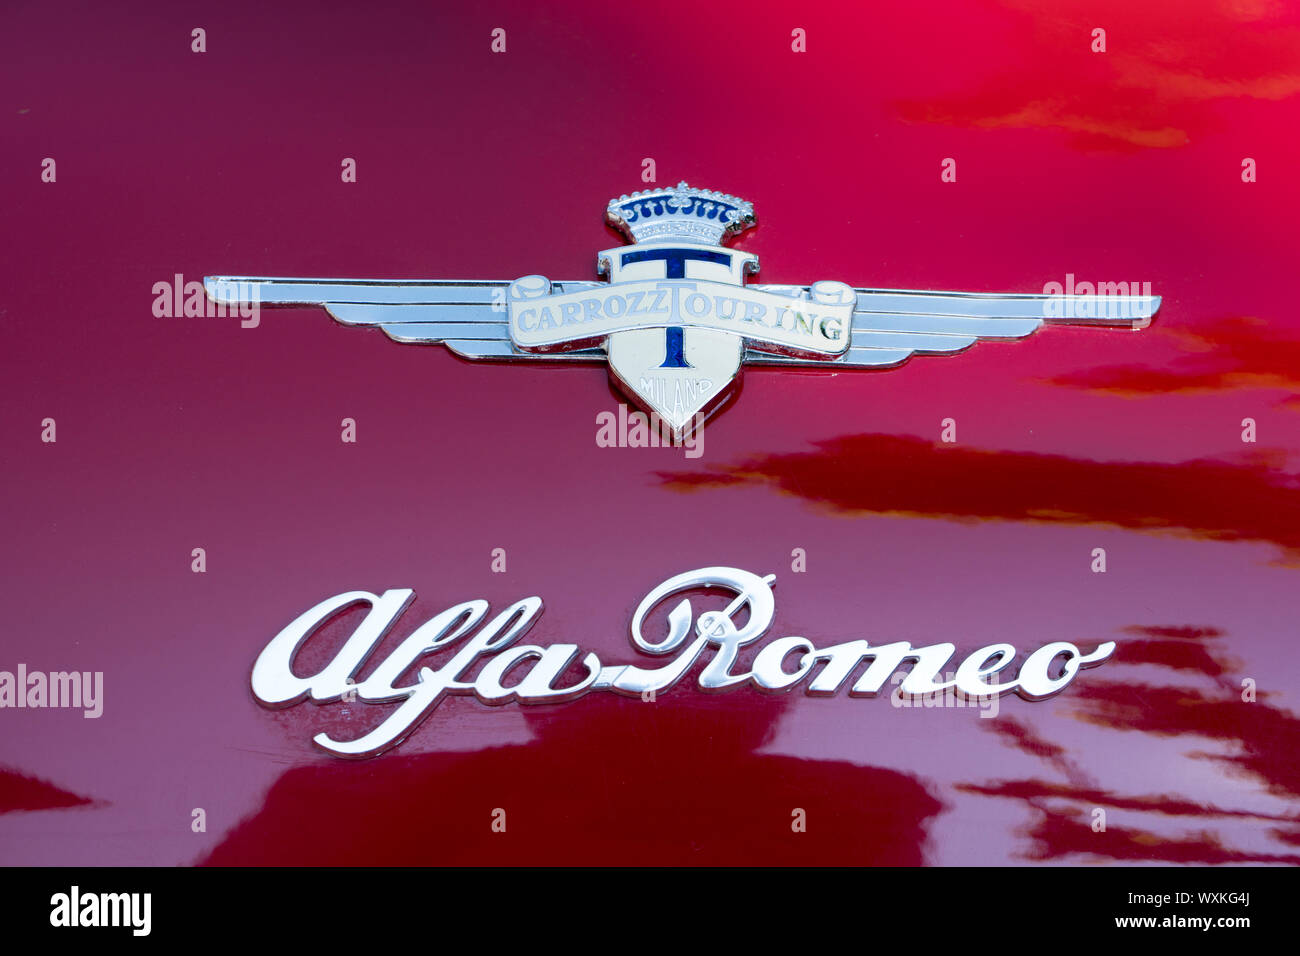 Alfa Romeo Vintage Car Logo High Resolution Stock Photography And Images Alamy